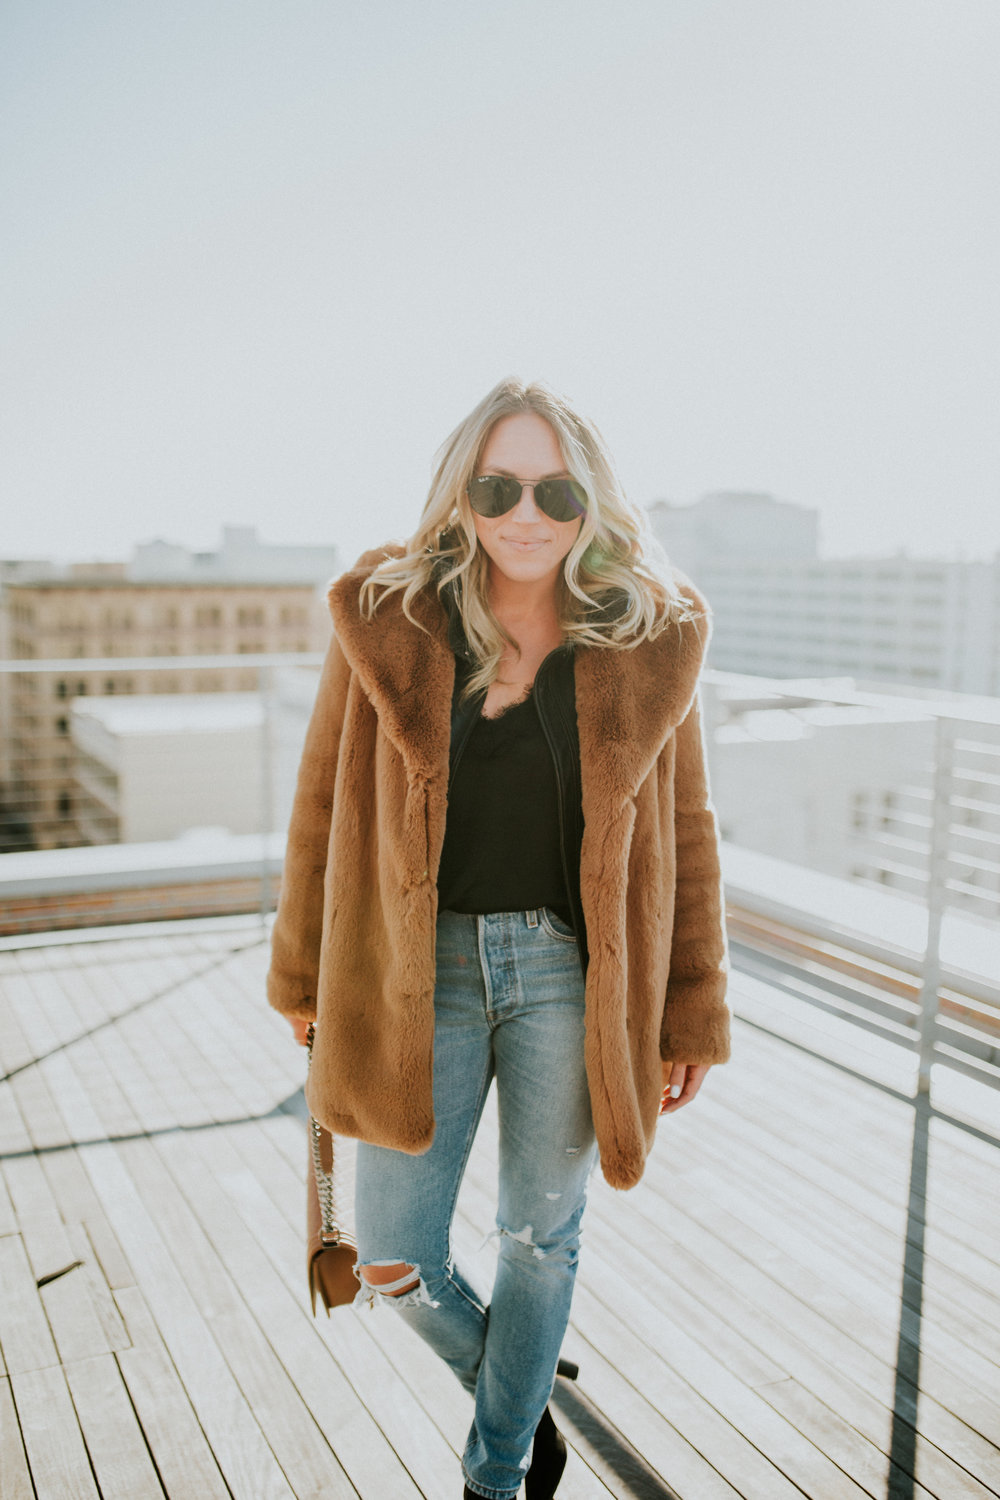 Blogger Gracefully Taylored in Zara Coat and Levis(14).jpg